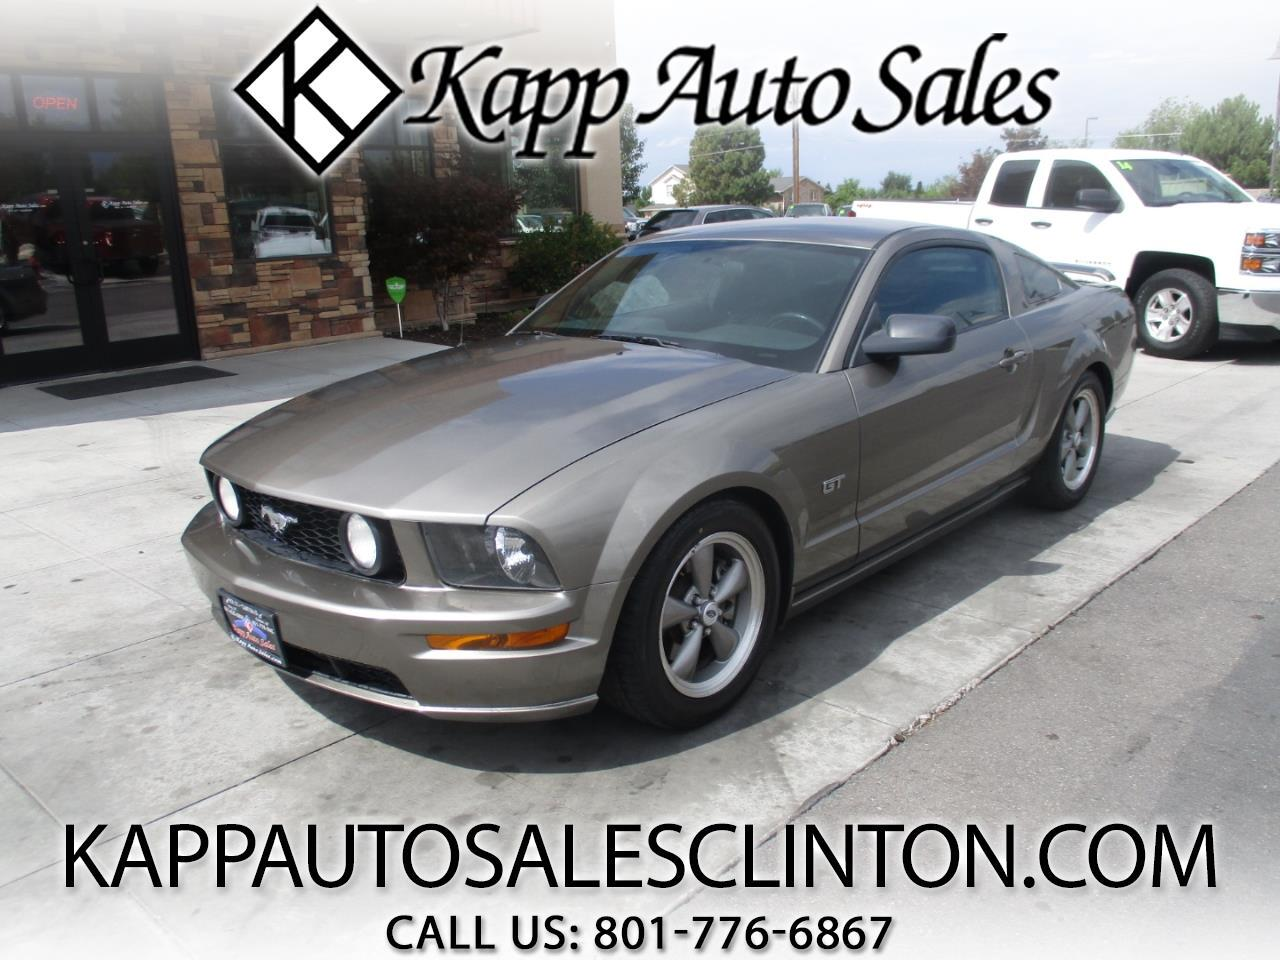 2005 Ford Mustang 2dr Cpe GT Deluxe